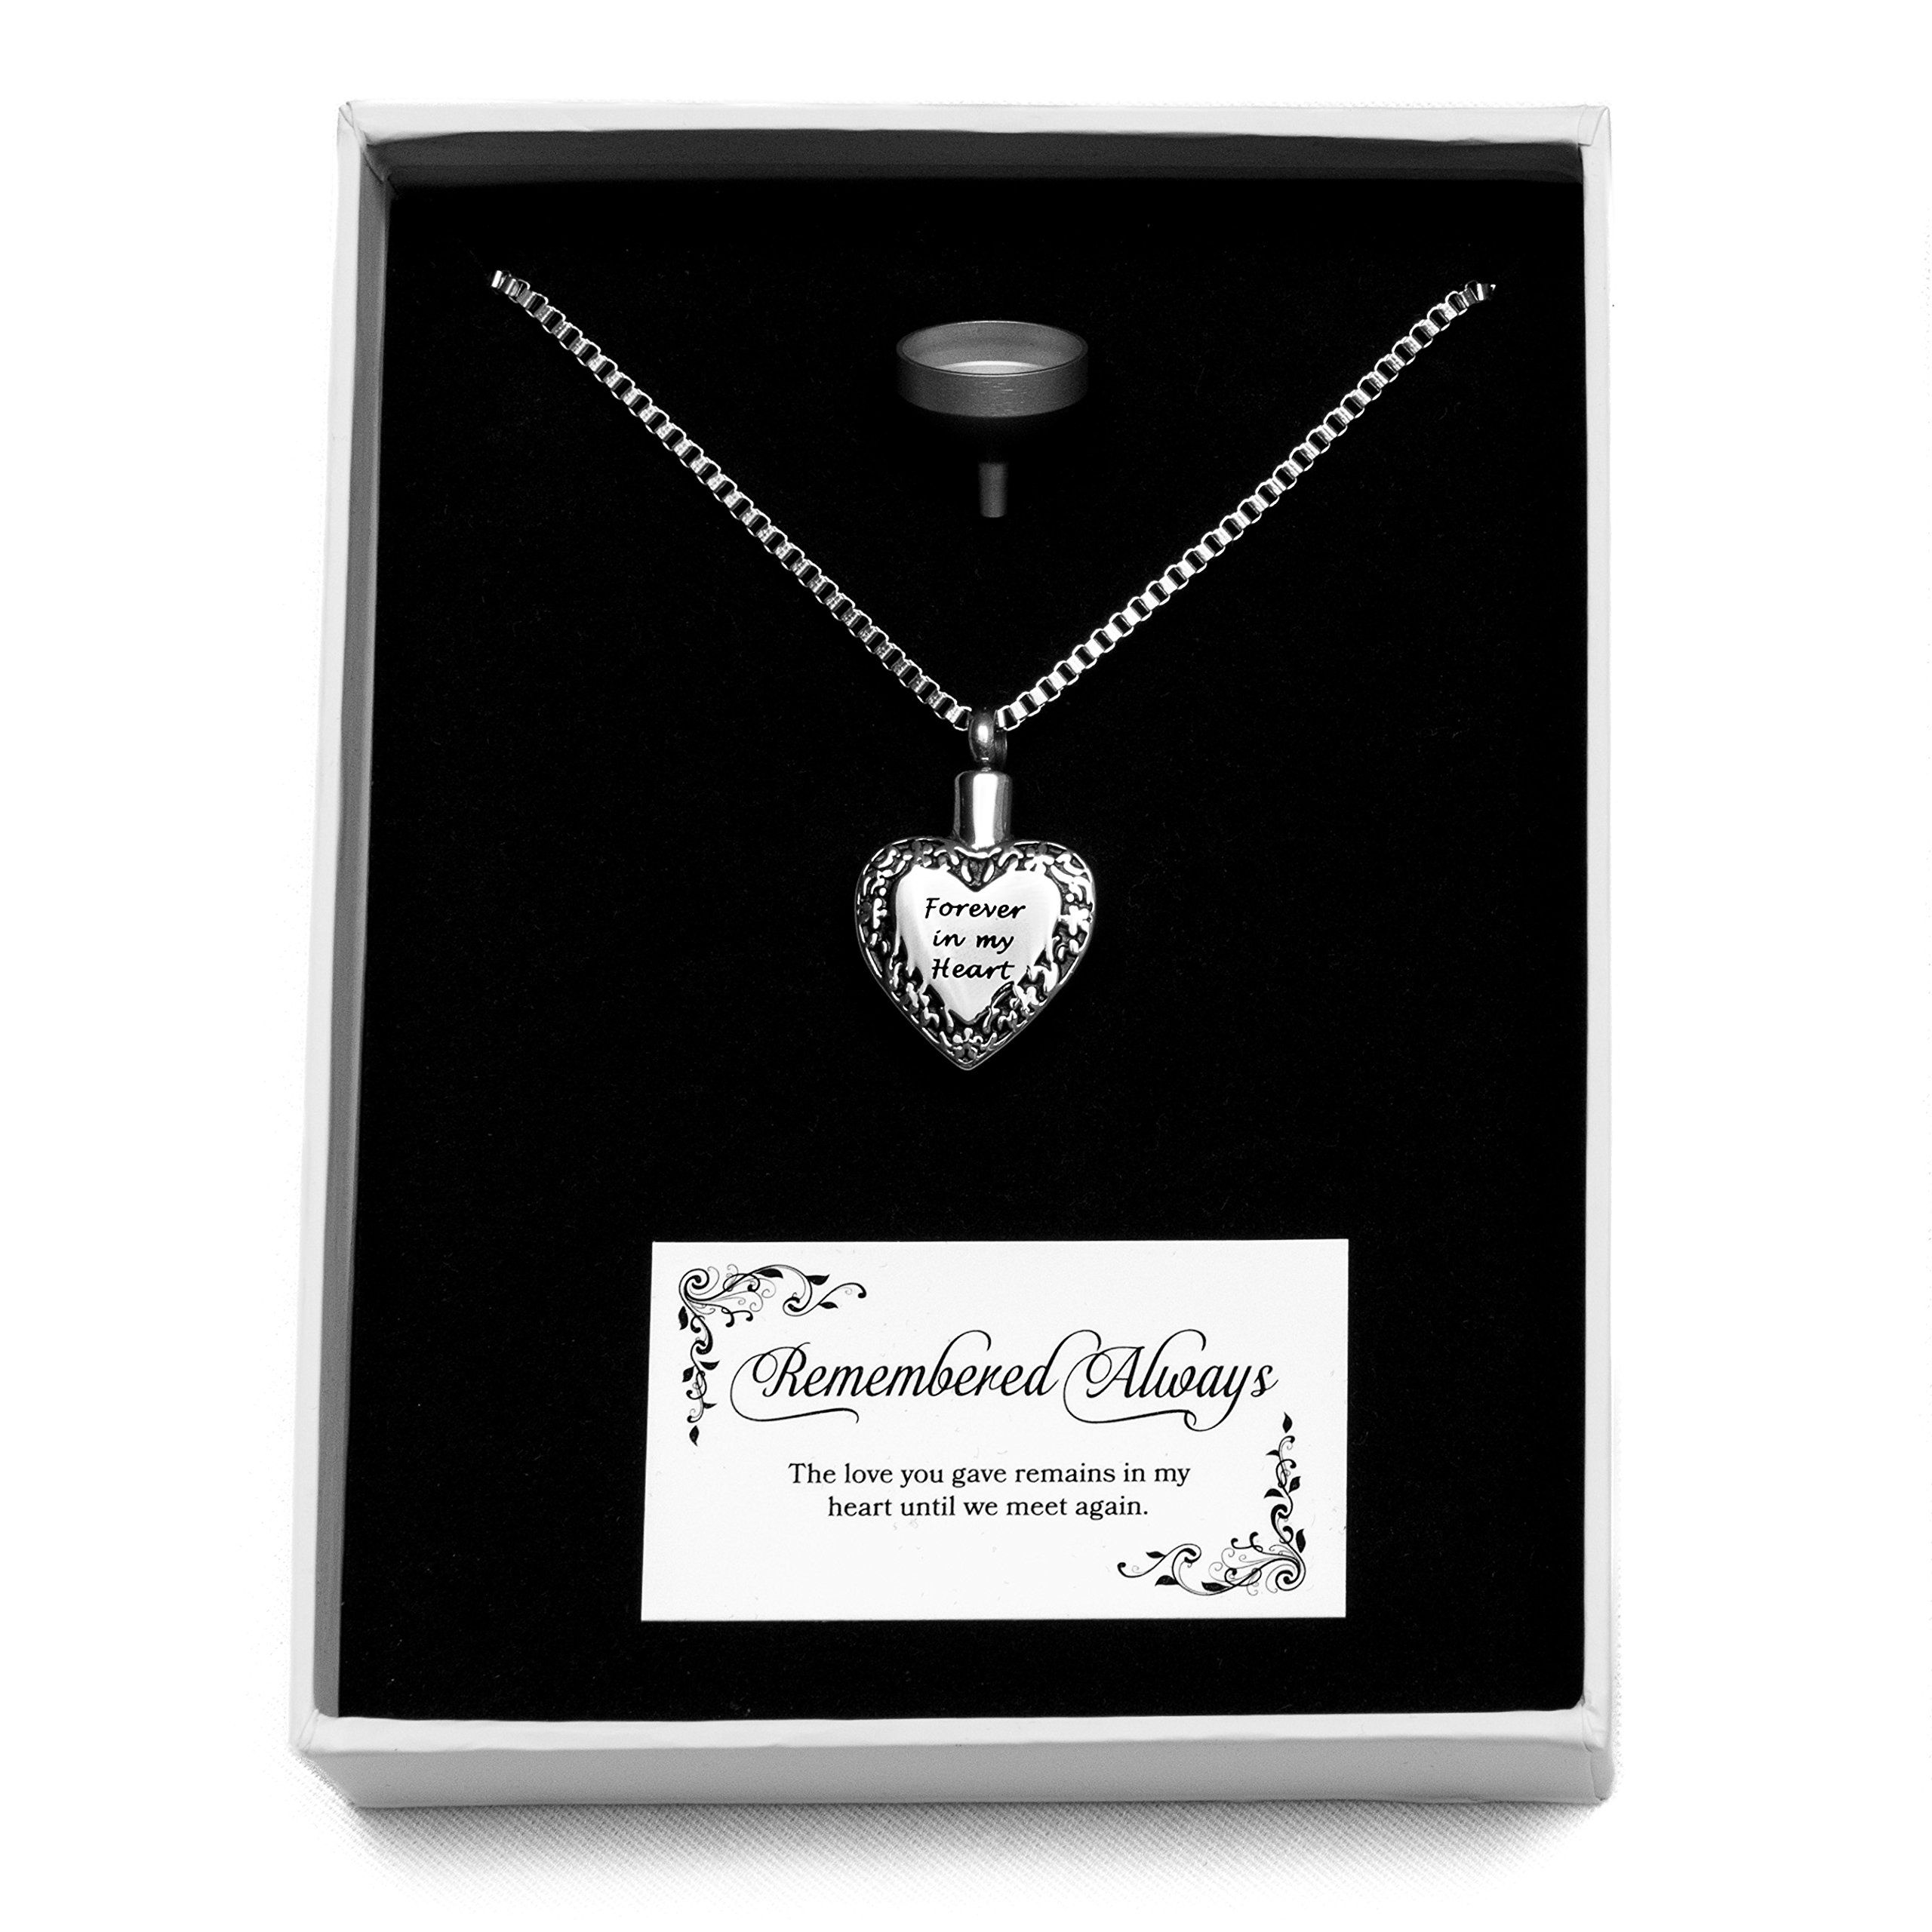 Pet Memorial Jewelry Stainless Steel Cremation Urn And Funnel Will Help Me Cope With The Loss Of Chase All My Do With Images Pet Memorial Jewelry Memorial Jewelry Jewelry